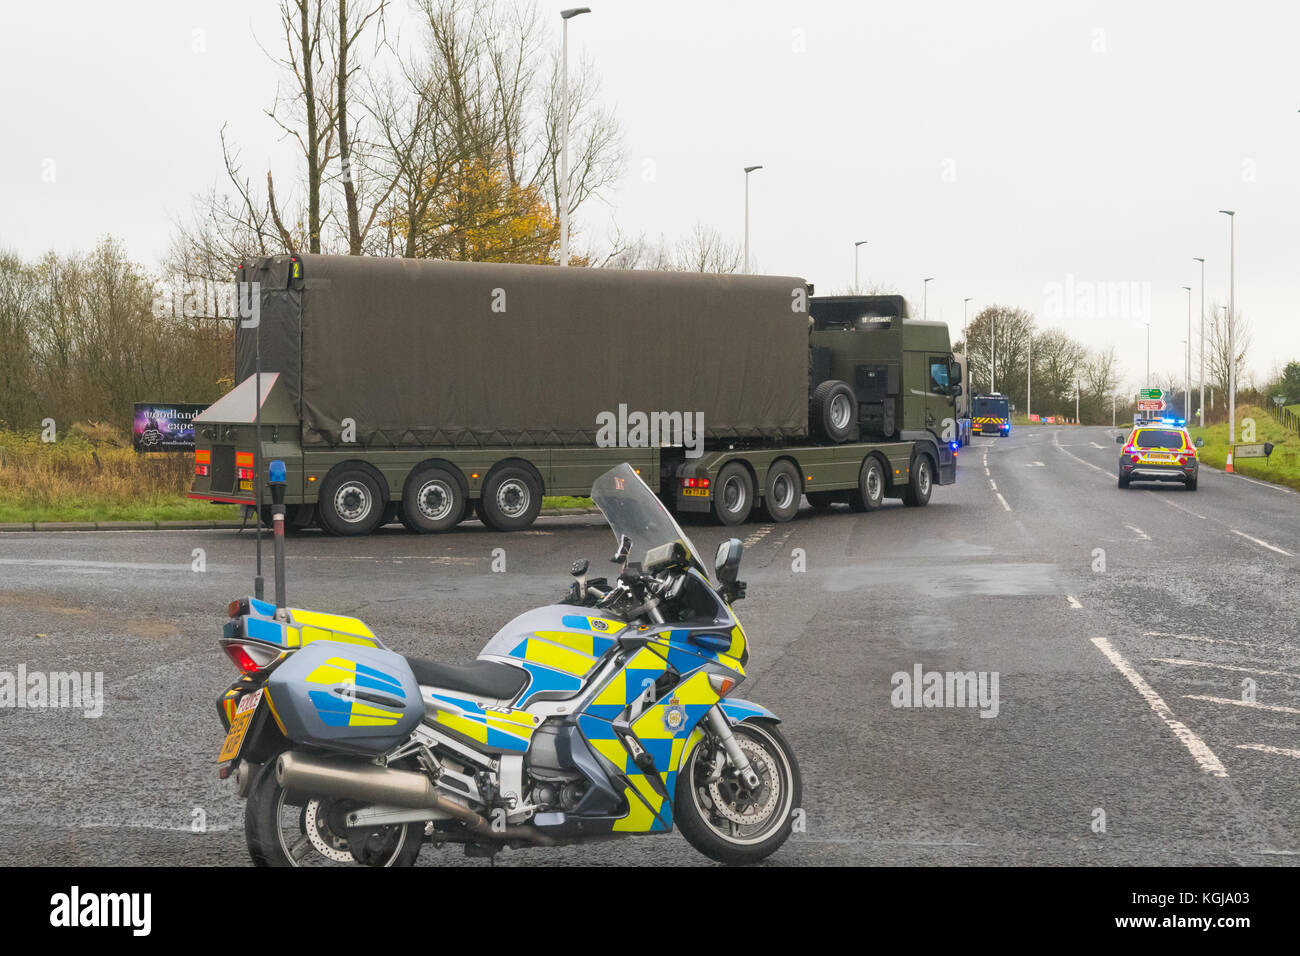 Stirlingshire, Scotland, UK. 8th Nov, 2017. what appears to be a heavily guarded nuclear weapon convoy passing through - Stock Image